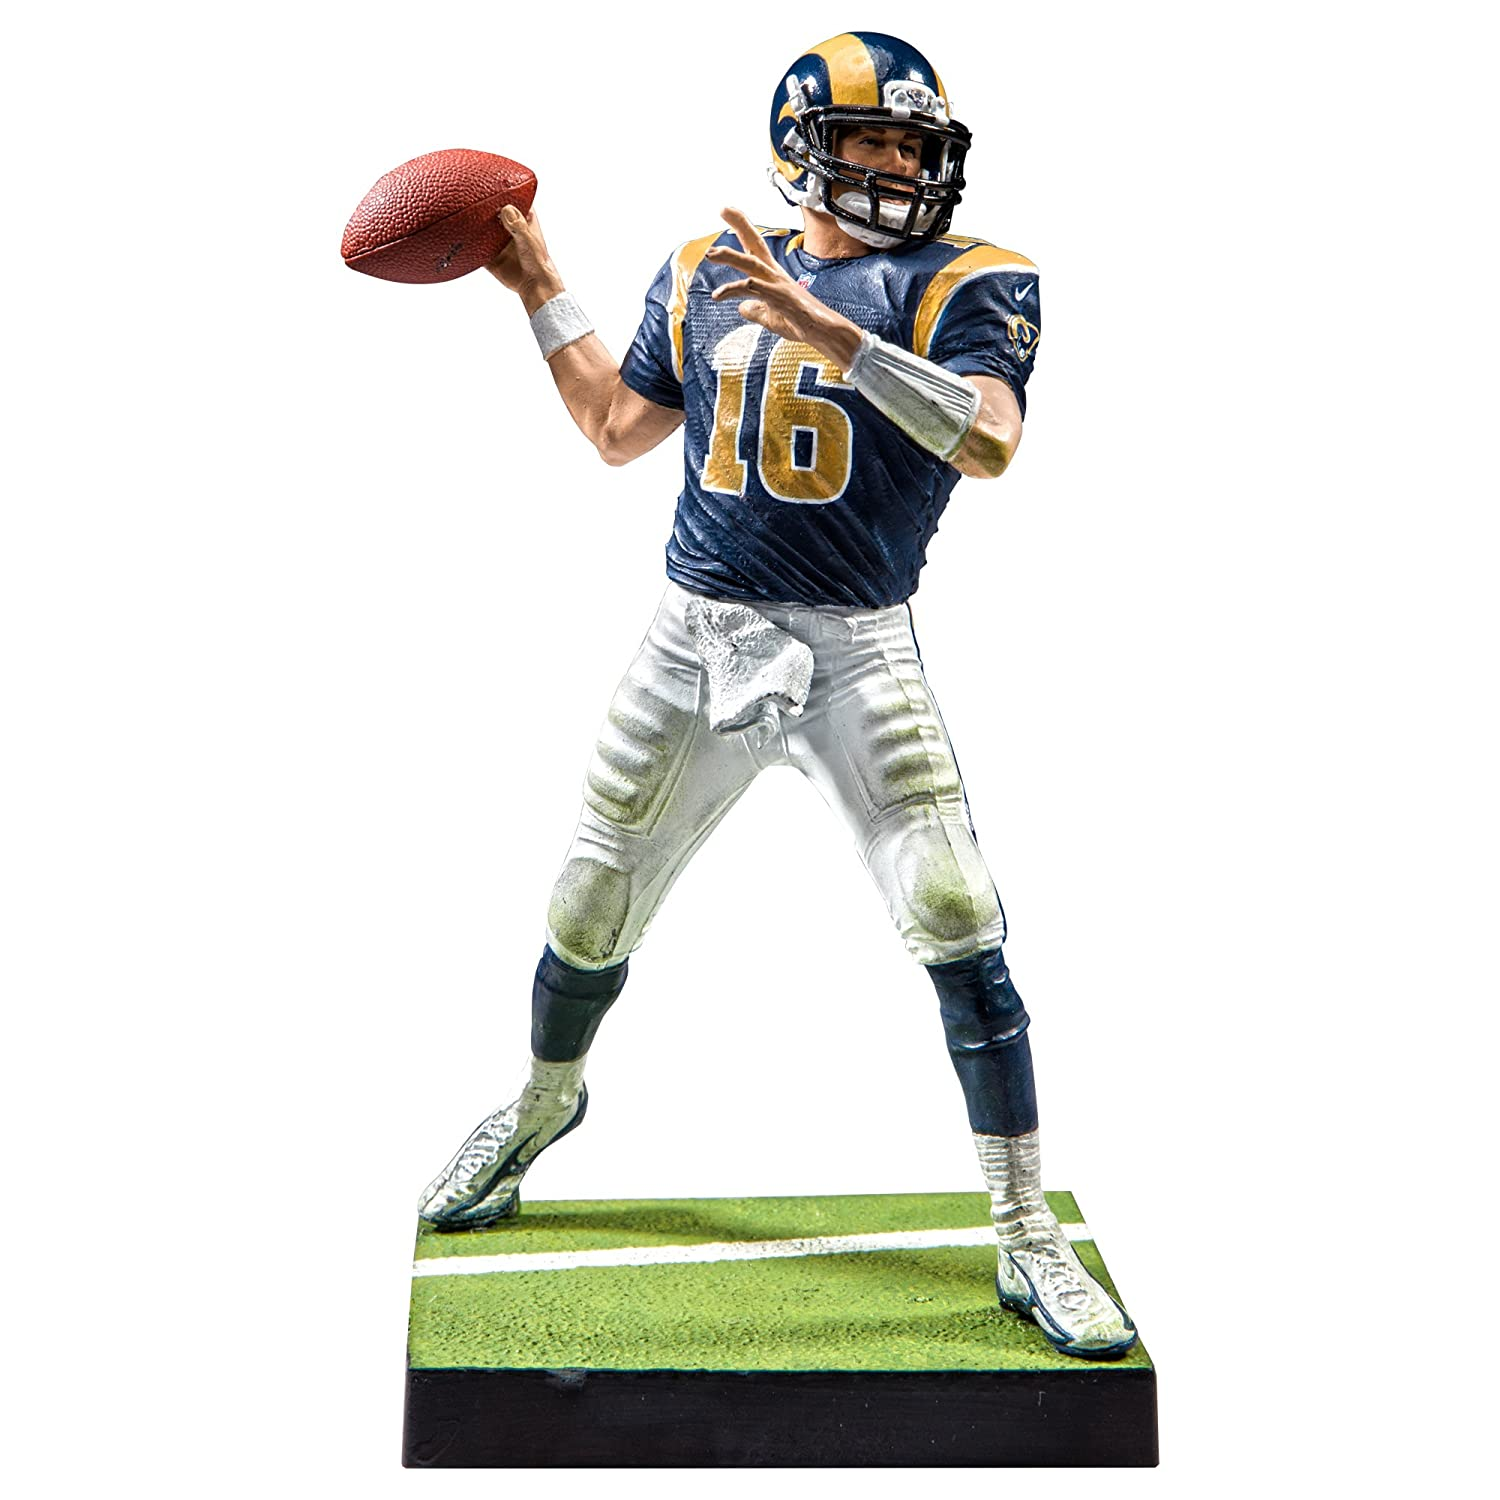 McFarlane Toys EA Sports Madden NFL 17 Ultimate Team Series 3 JARED Goff Figur 75715-6